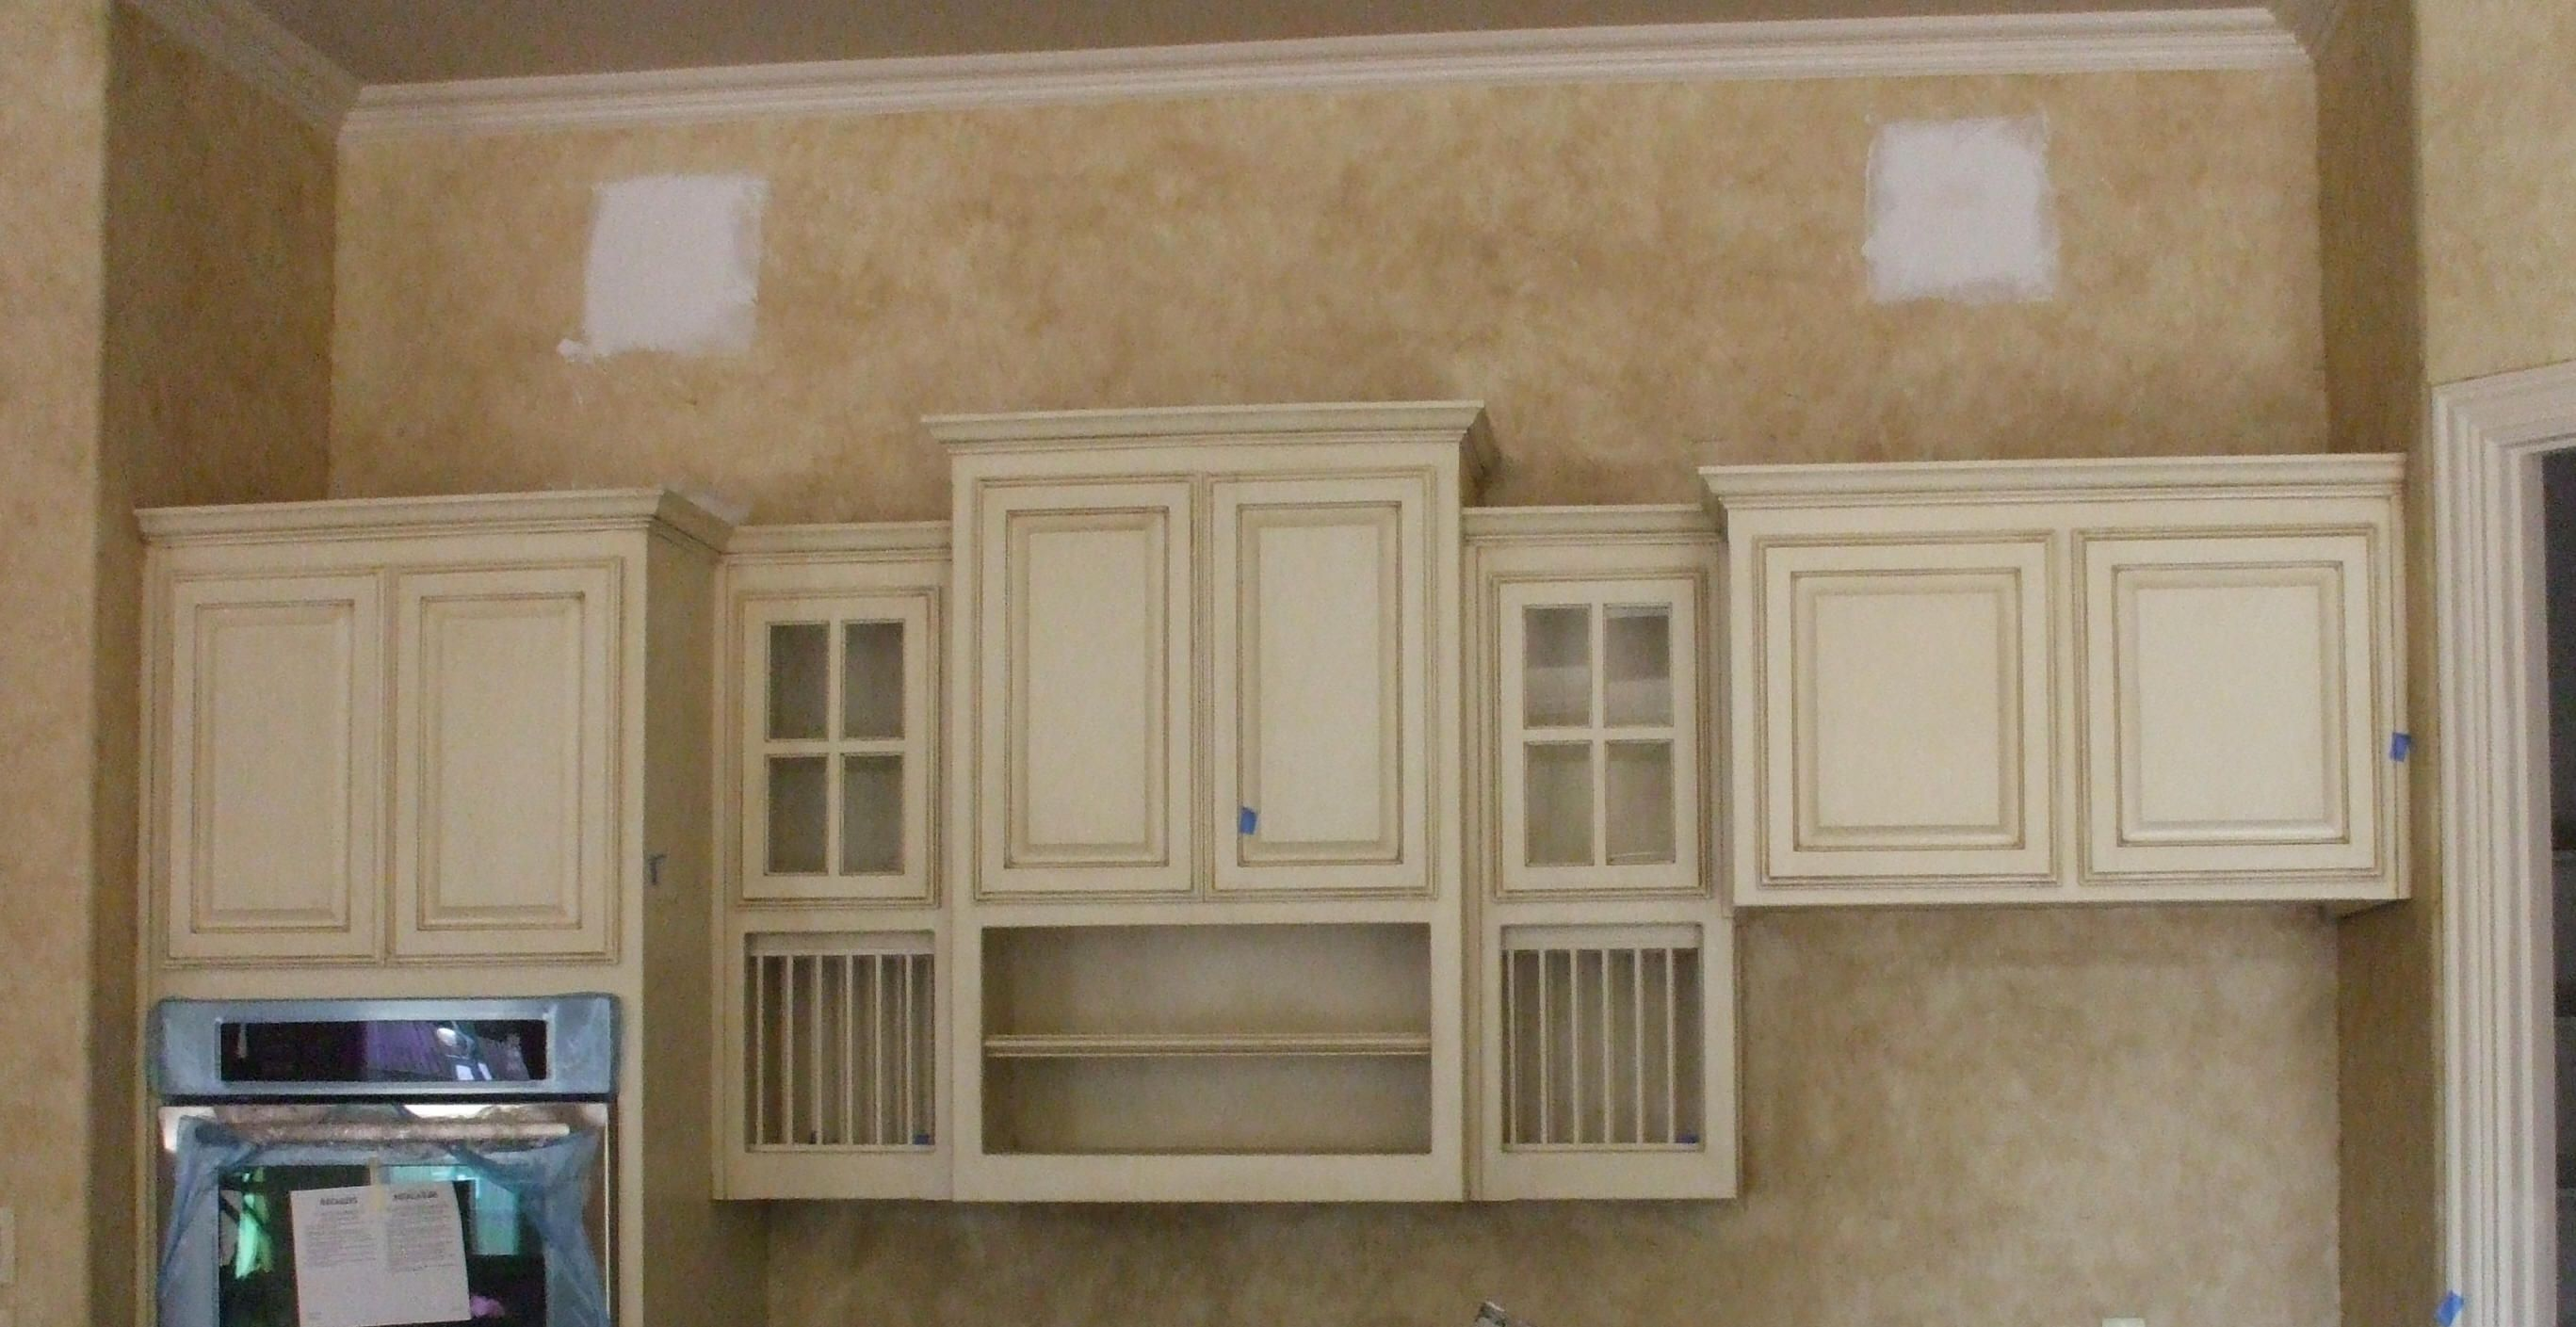 Cabinet Finishes And Glaze Colors Glazed Cabinets Faux Finish Wall Make This Kitchen Custom